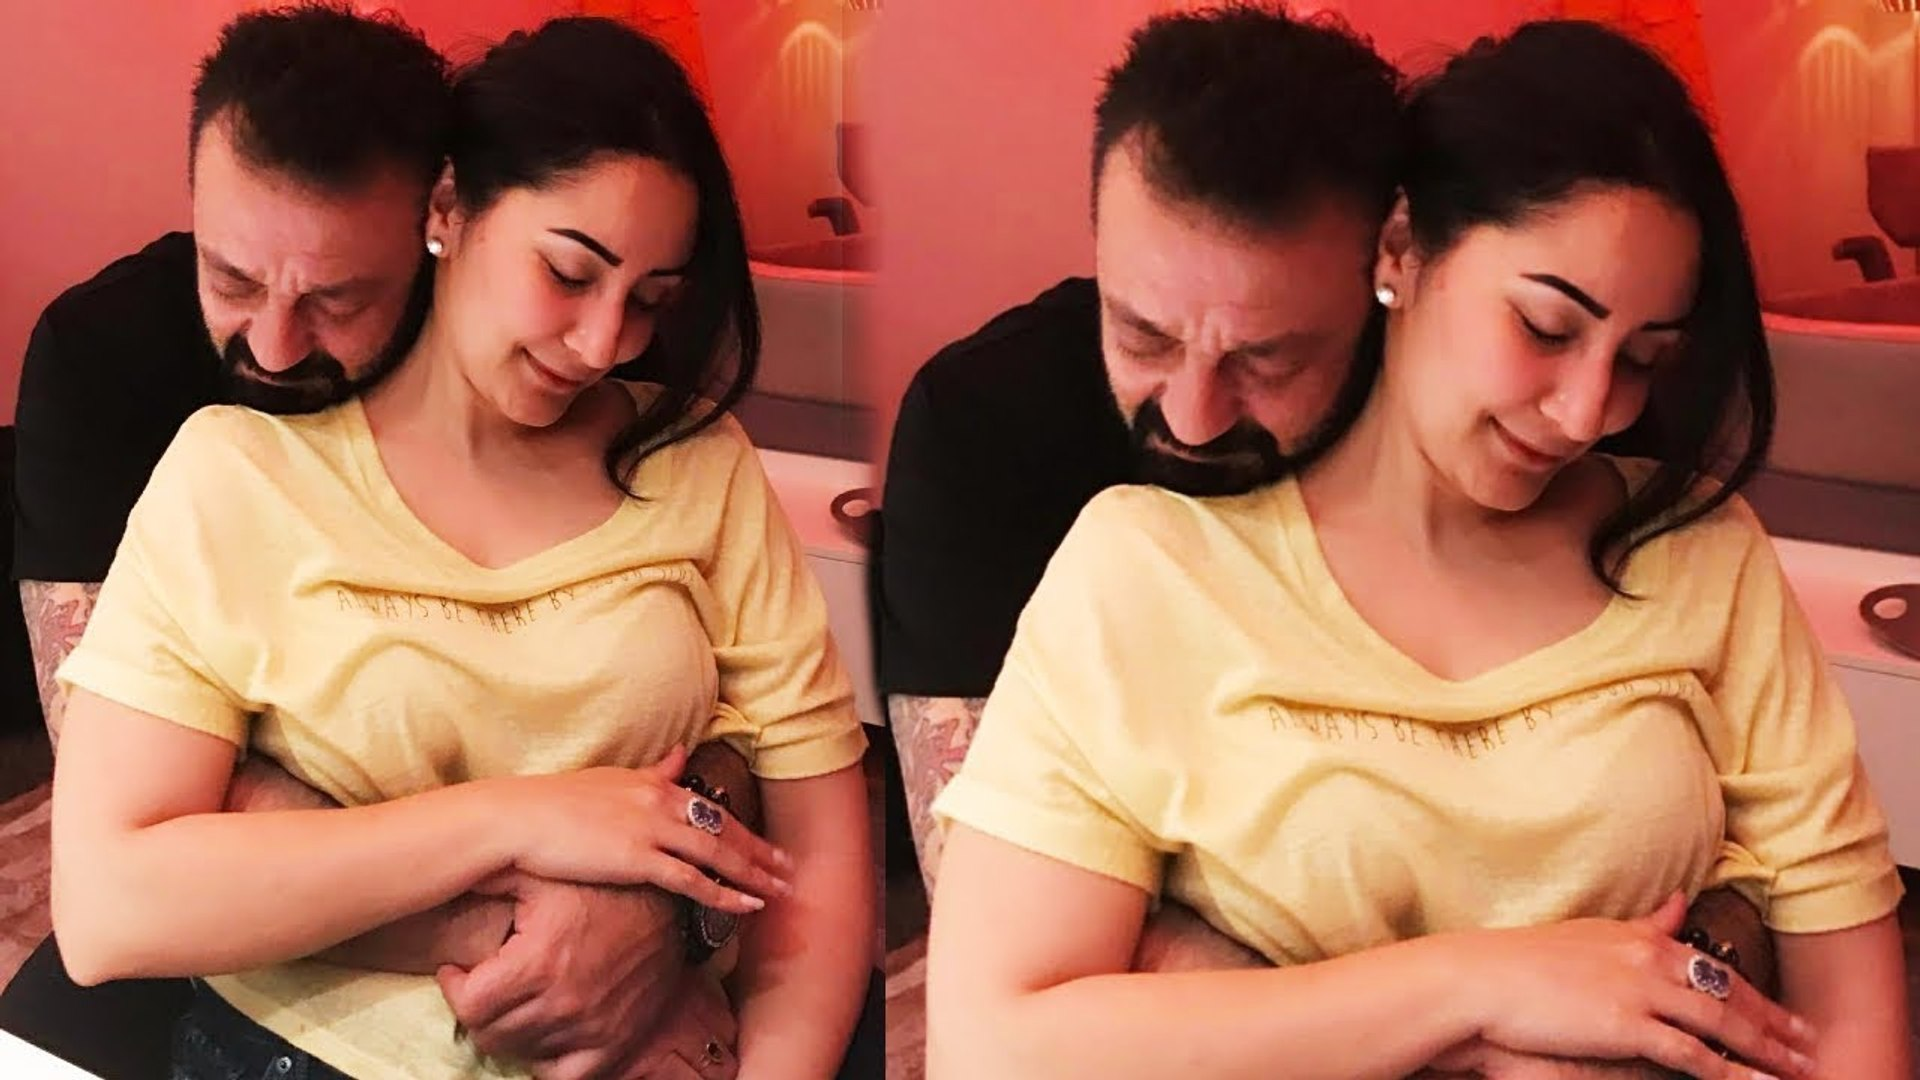 LOVE BONDING Between Sanjay Dutt And His Wife Manyata Dutt - Unseen Videos And Pics